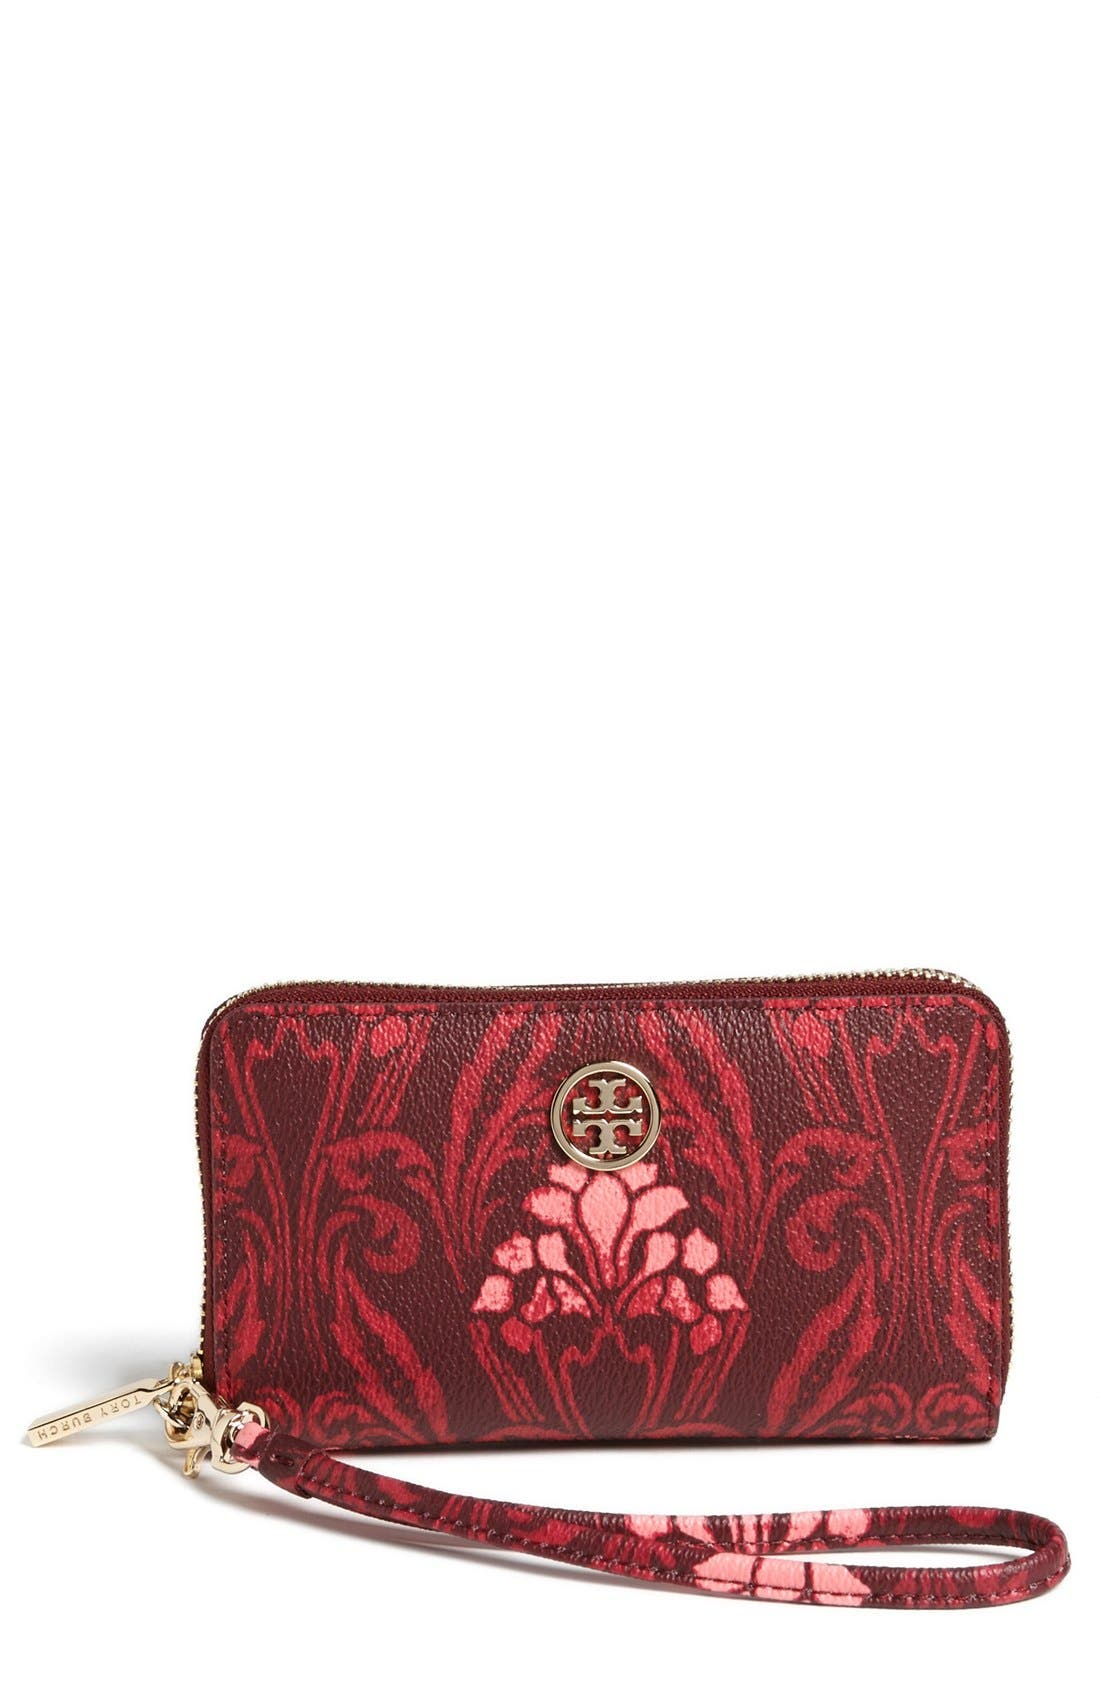 Alternate Image 1 Selected - Tory Burch 'Robinson' Smartphone Wristlet